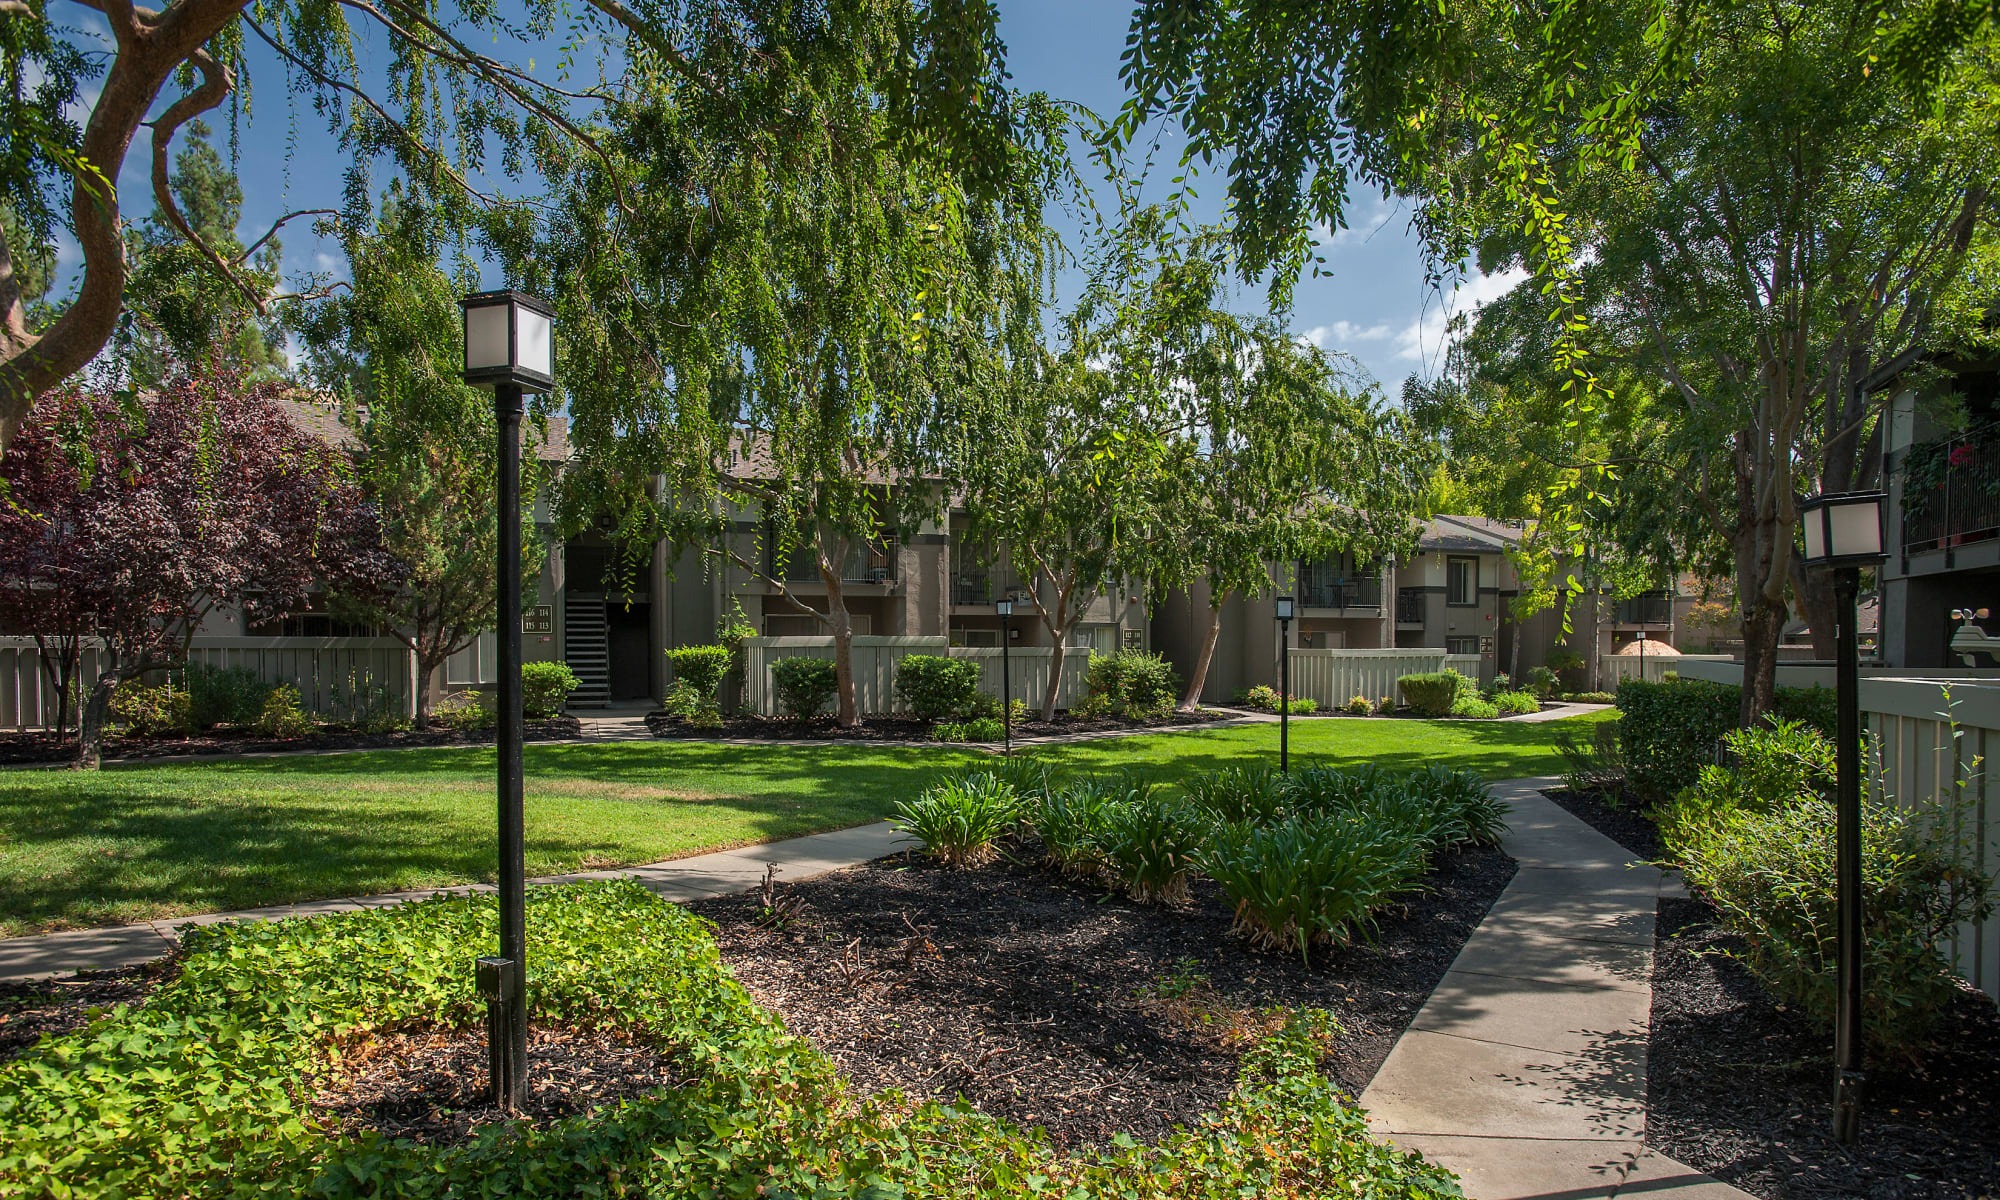 View photos of our affordable property at Valley Ridge Apartment Homes in Martinez, California